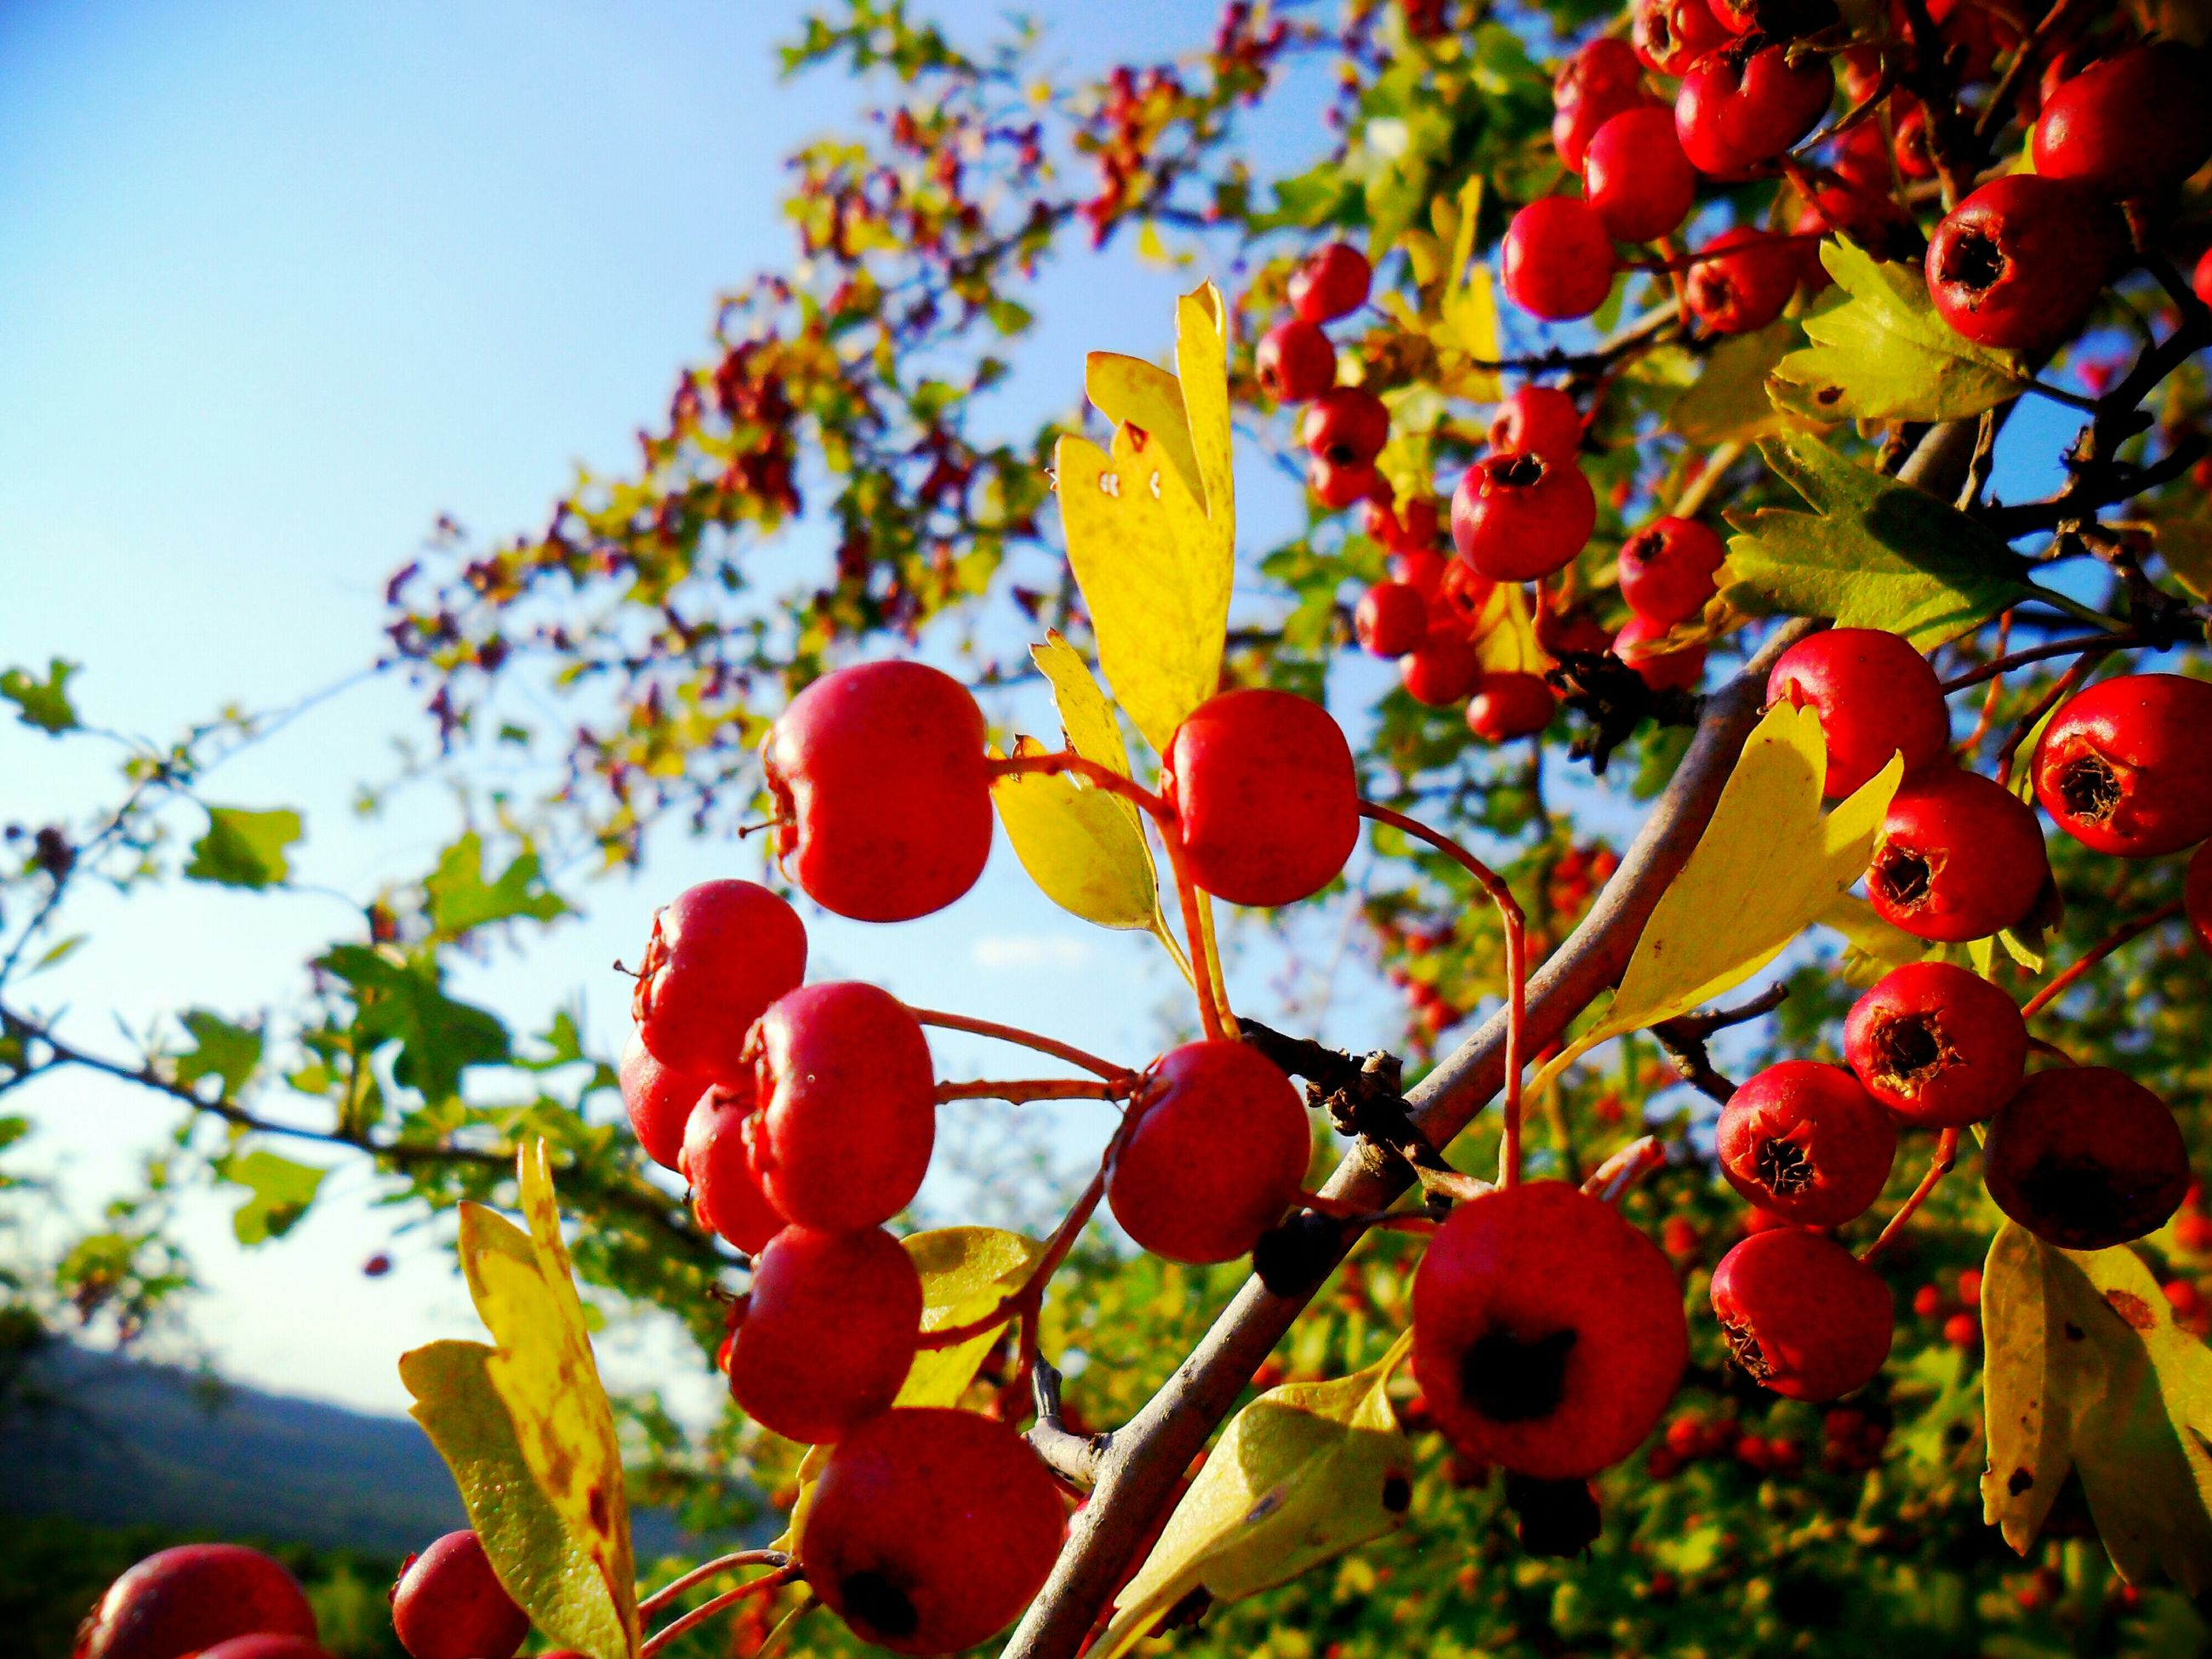 freshness, fruit, growth, red, branch, tree, low angle view, food and drink, flower, nature, beauty in nature, leaf, cherry, food, apple tree, berry fruit, berry, focus on foreground, healthy eating, cherry tree